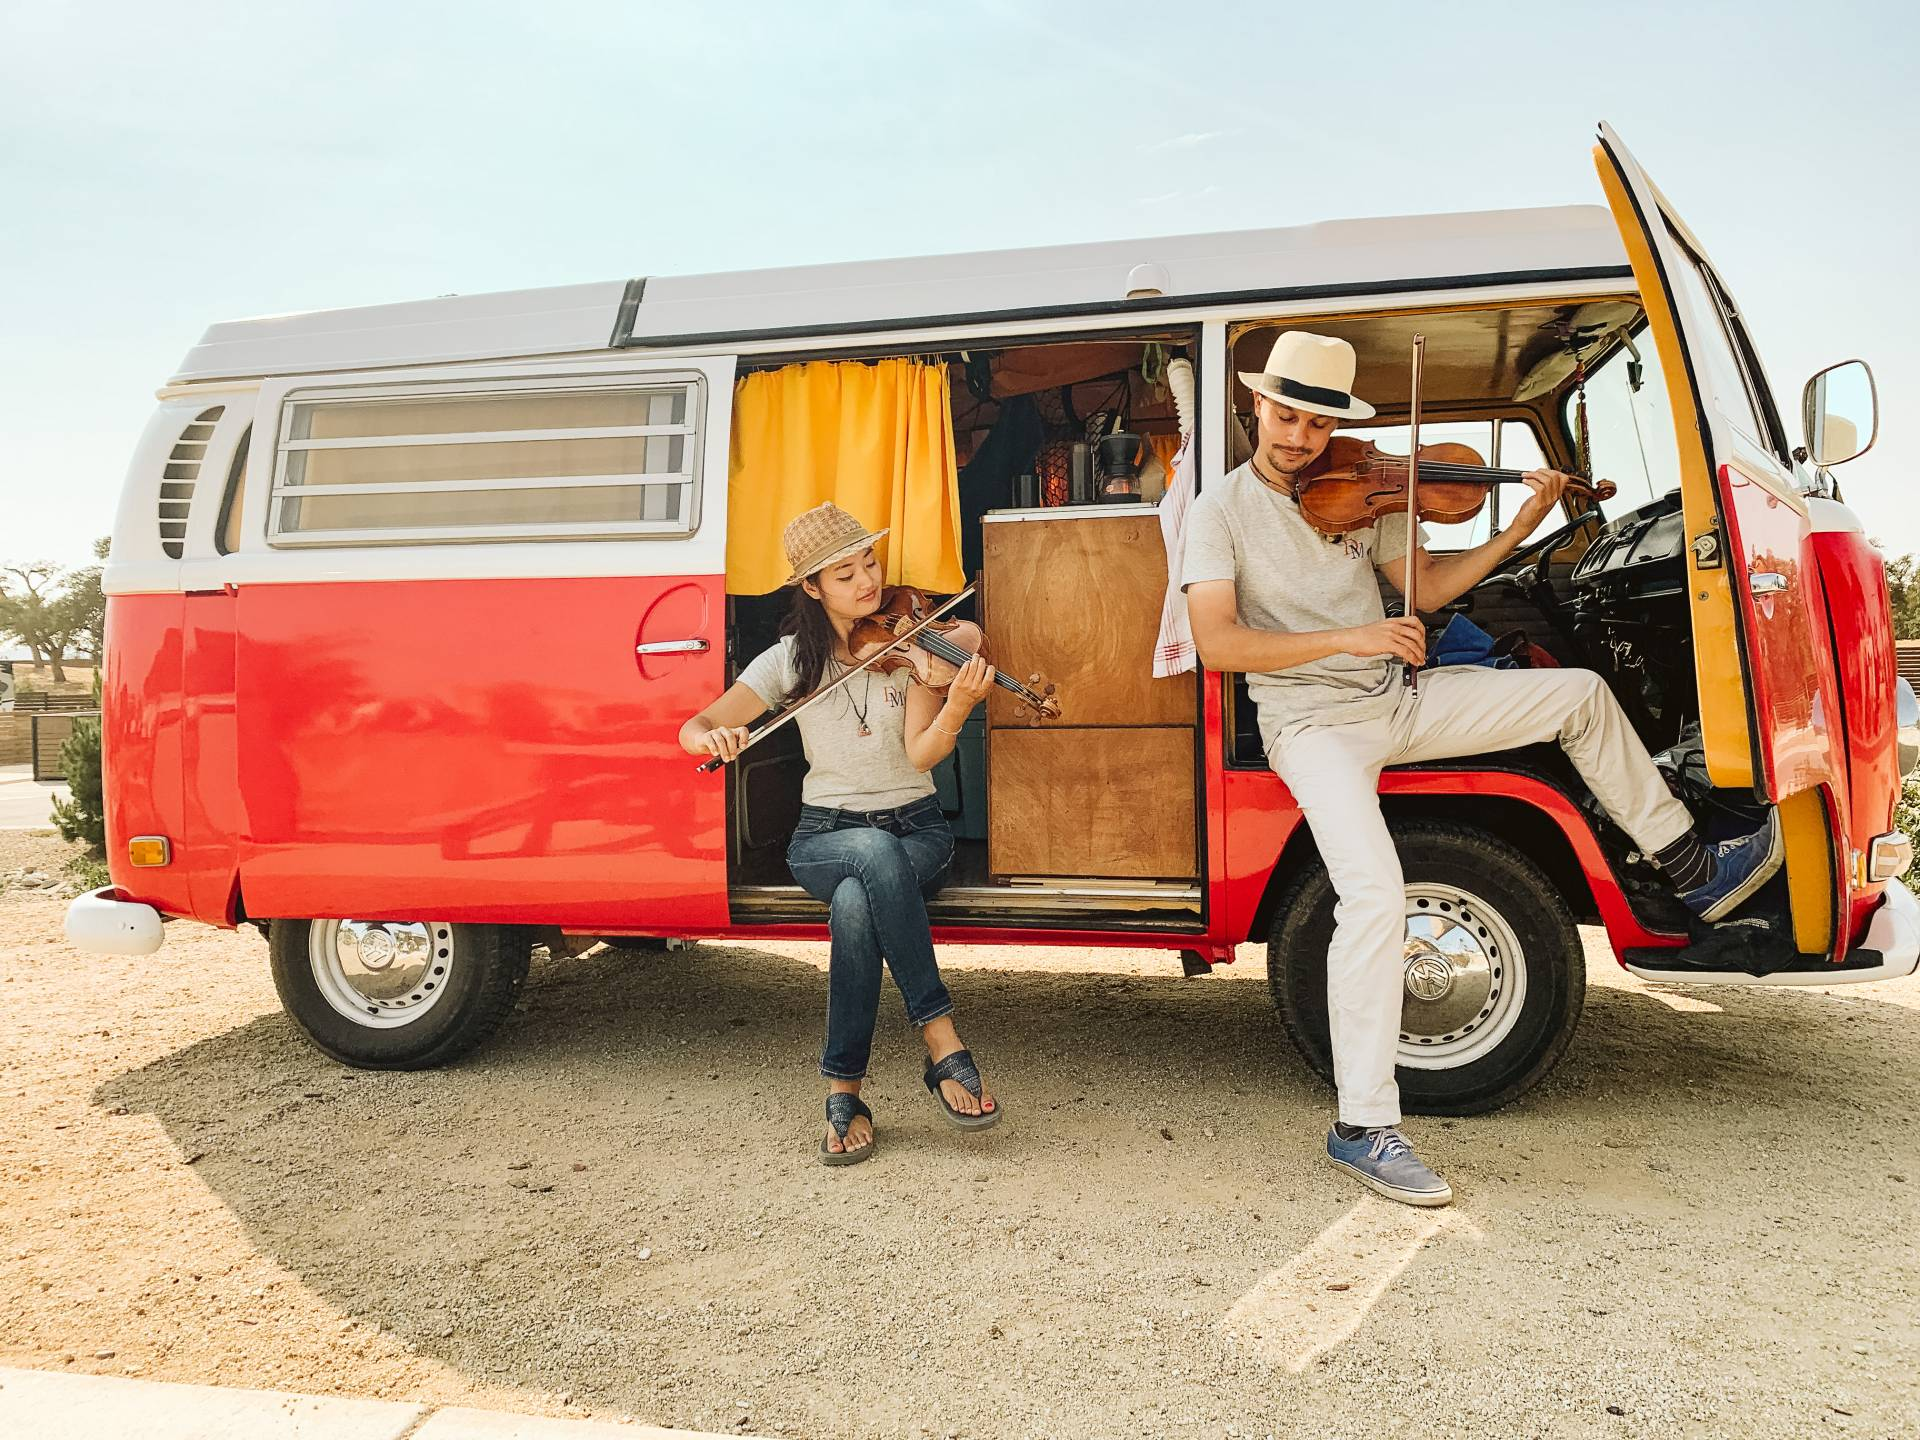 MusiKaravan violinists Etienne Gara and YuEun Kim in Paso Robles with their bright red 1971 VW bus named Boris. Courtesy Lathan J.